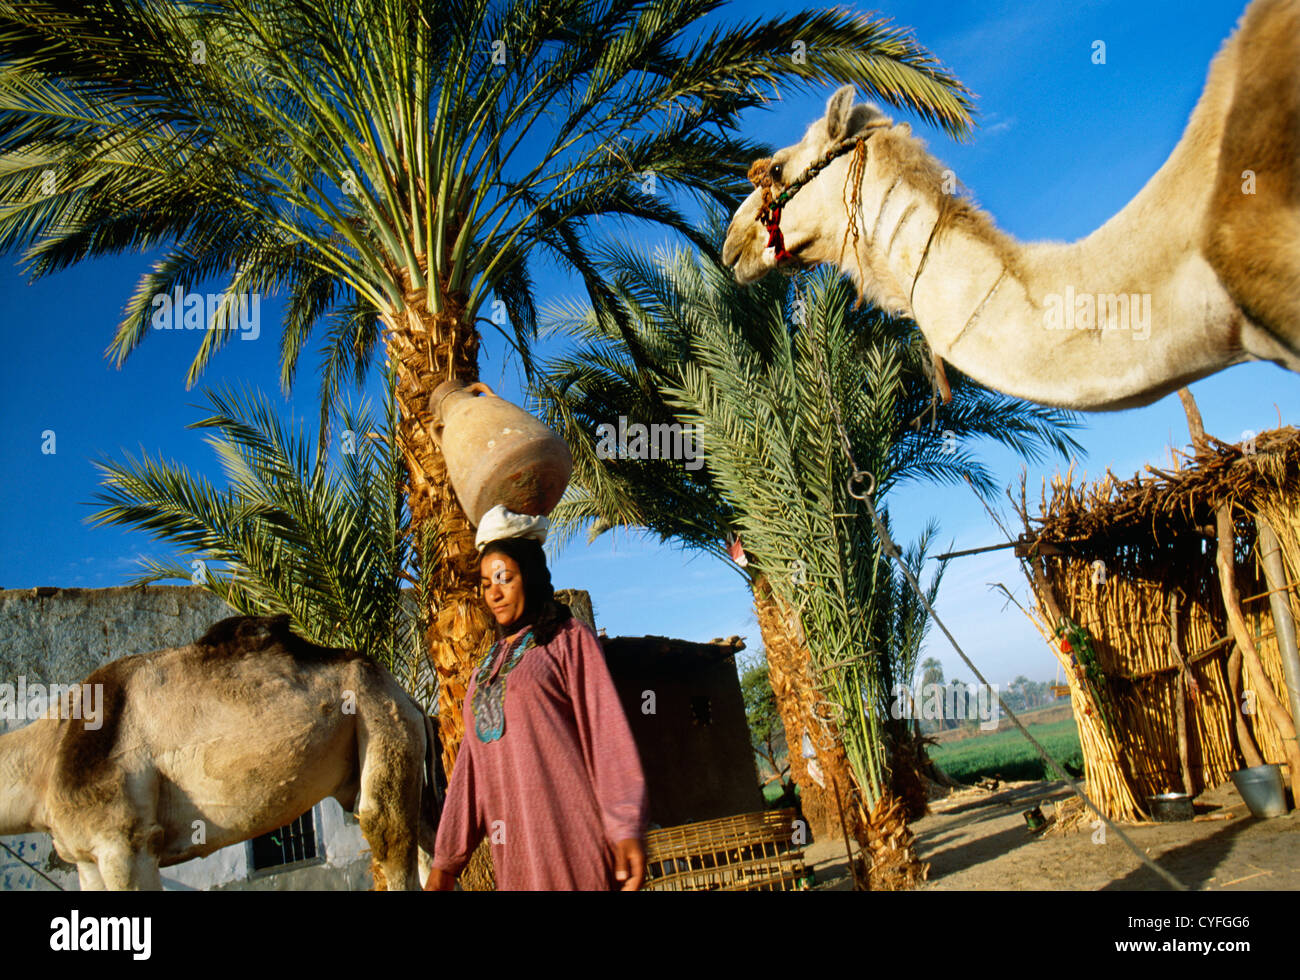 Egypt, Nile river, Luxor, West Bank, Woman leaving home to get water with jar from Nile river. Camels - Stock Image